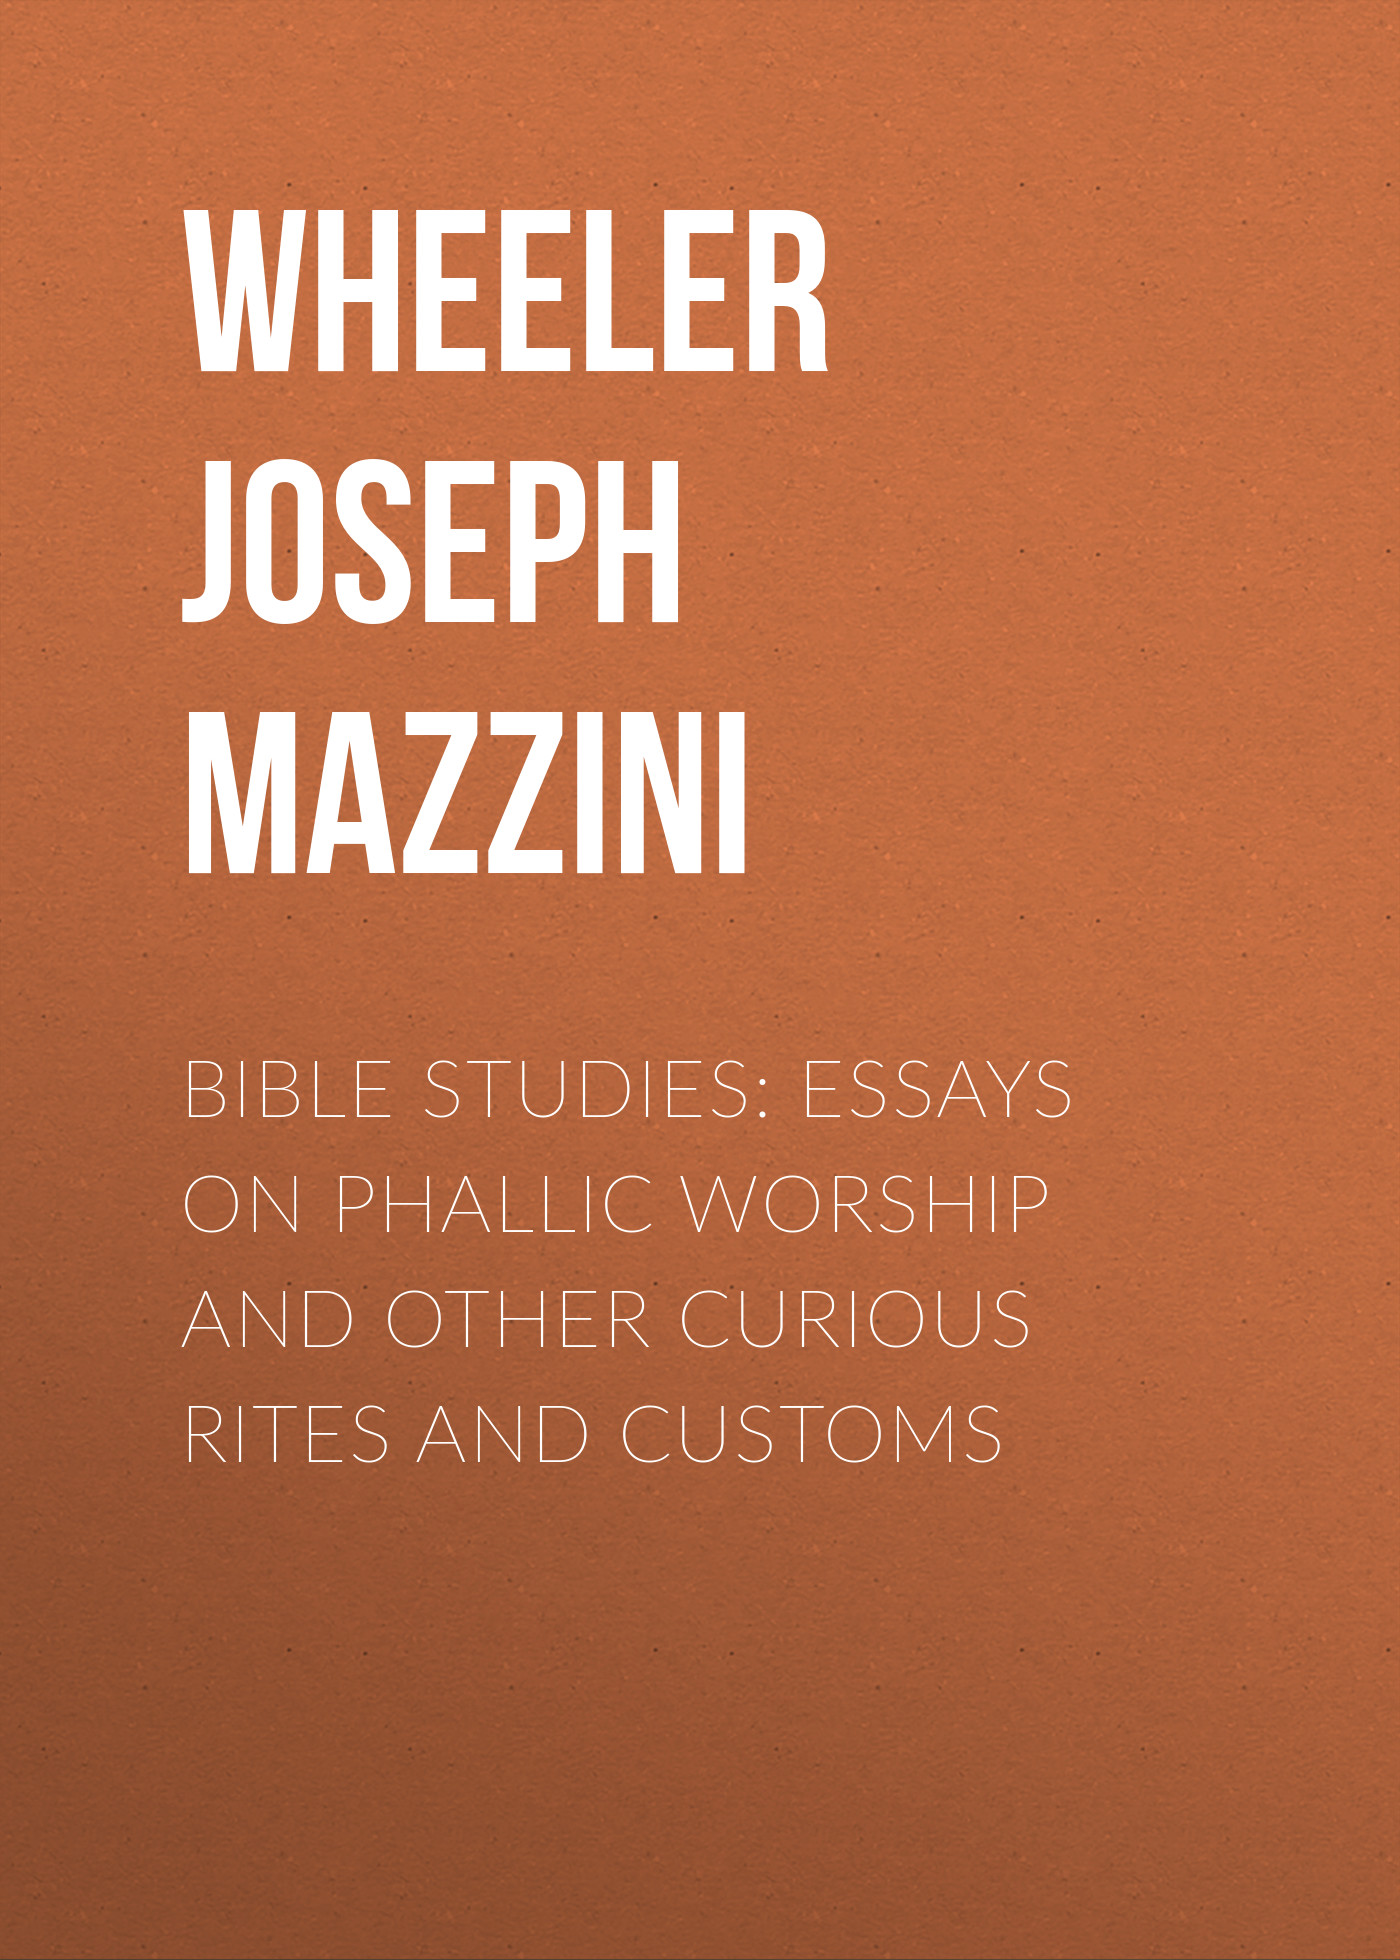 essays on parasitism Wheeler Joseph Mazzini Bible Studies: Essays on Phallic Worship and Other Curious Rites and Customs